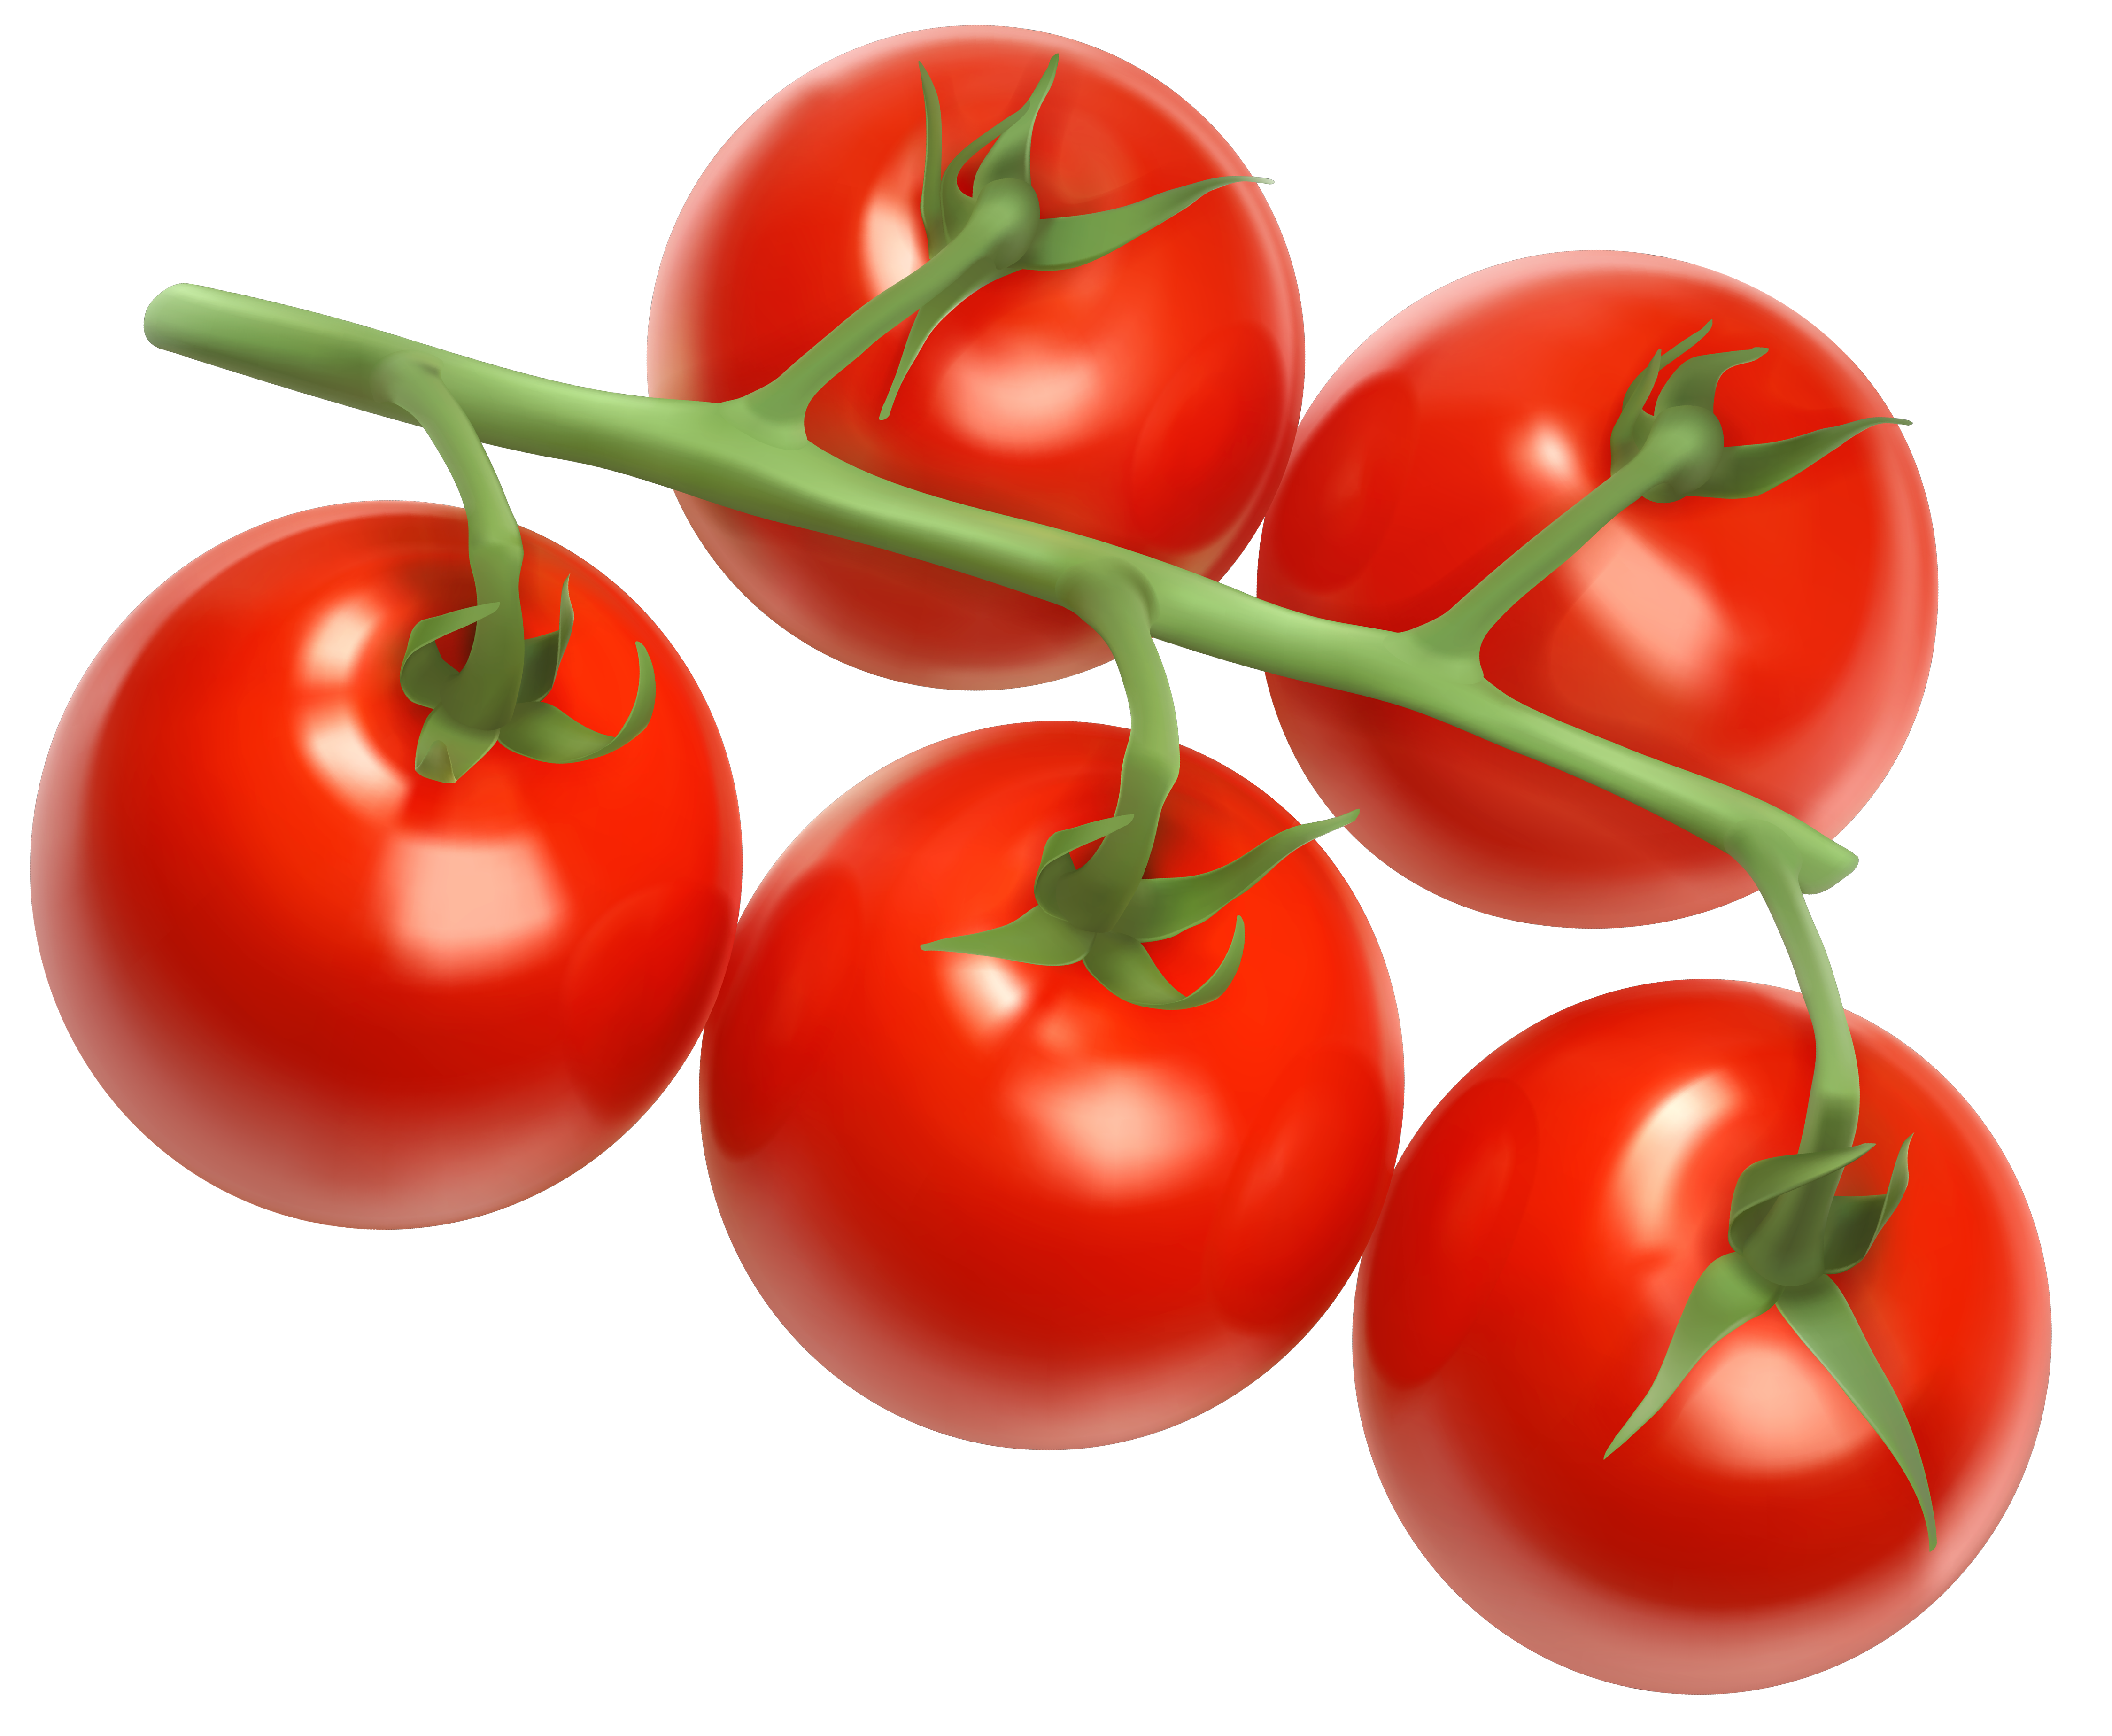 Png vector image gallery. Tomatoes clipart tomato leaf